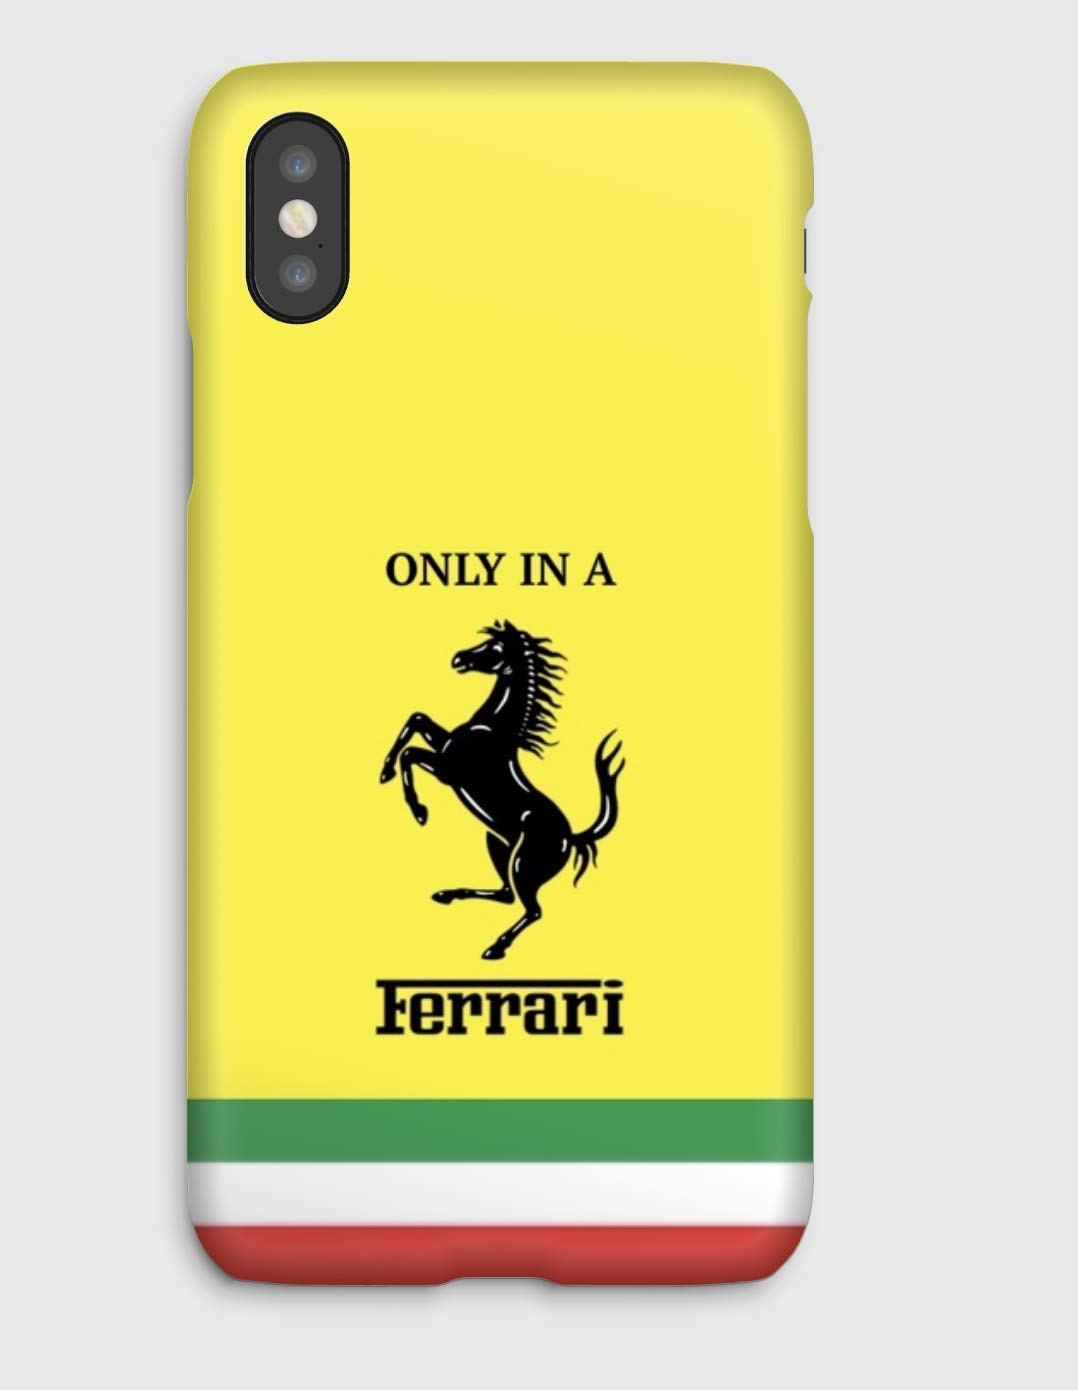 Only in a Ferrari J, coque pour iPhone XS, XS Max, XR, X, 8, 8+, 7, 7+, 6S, 6, 6S+, 6+, 5C, 5, 5S, 5SE, 4S, 4,